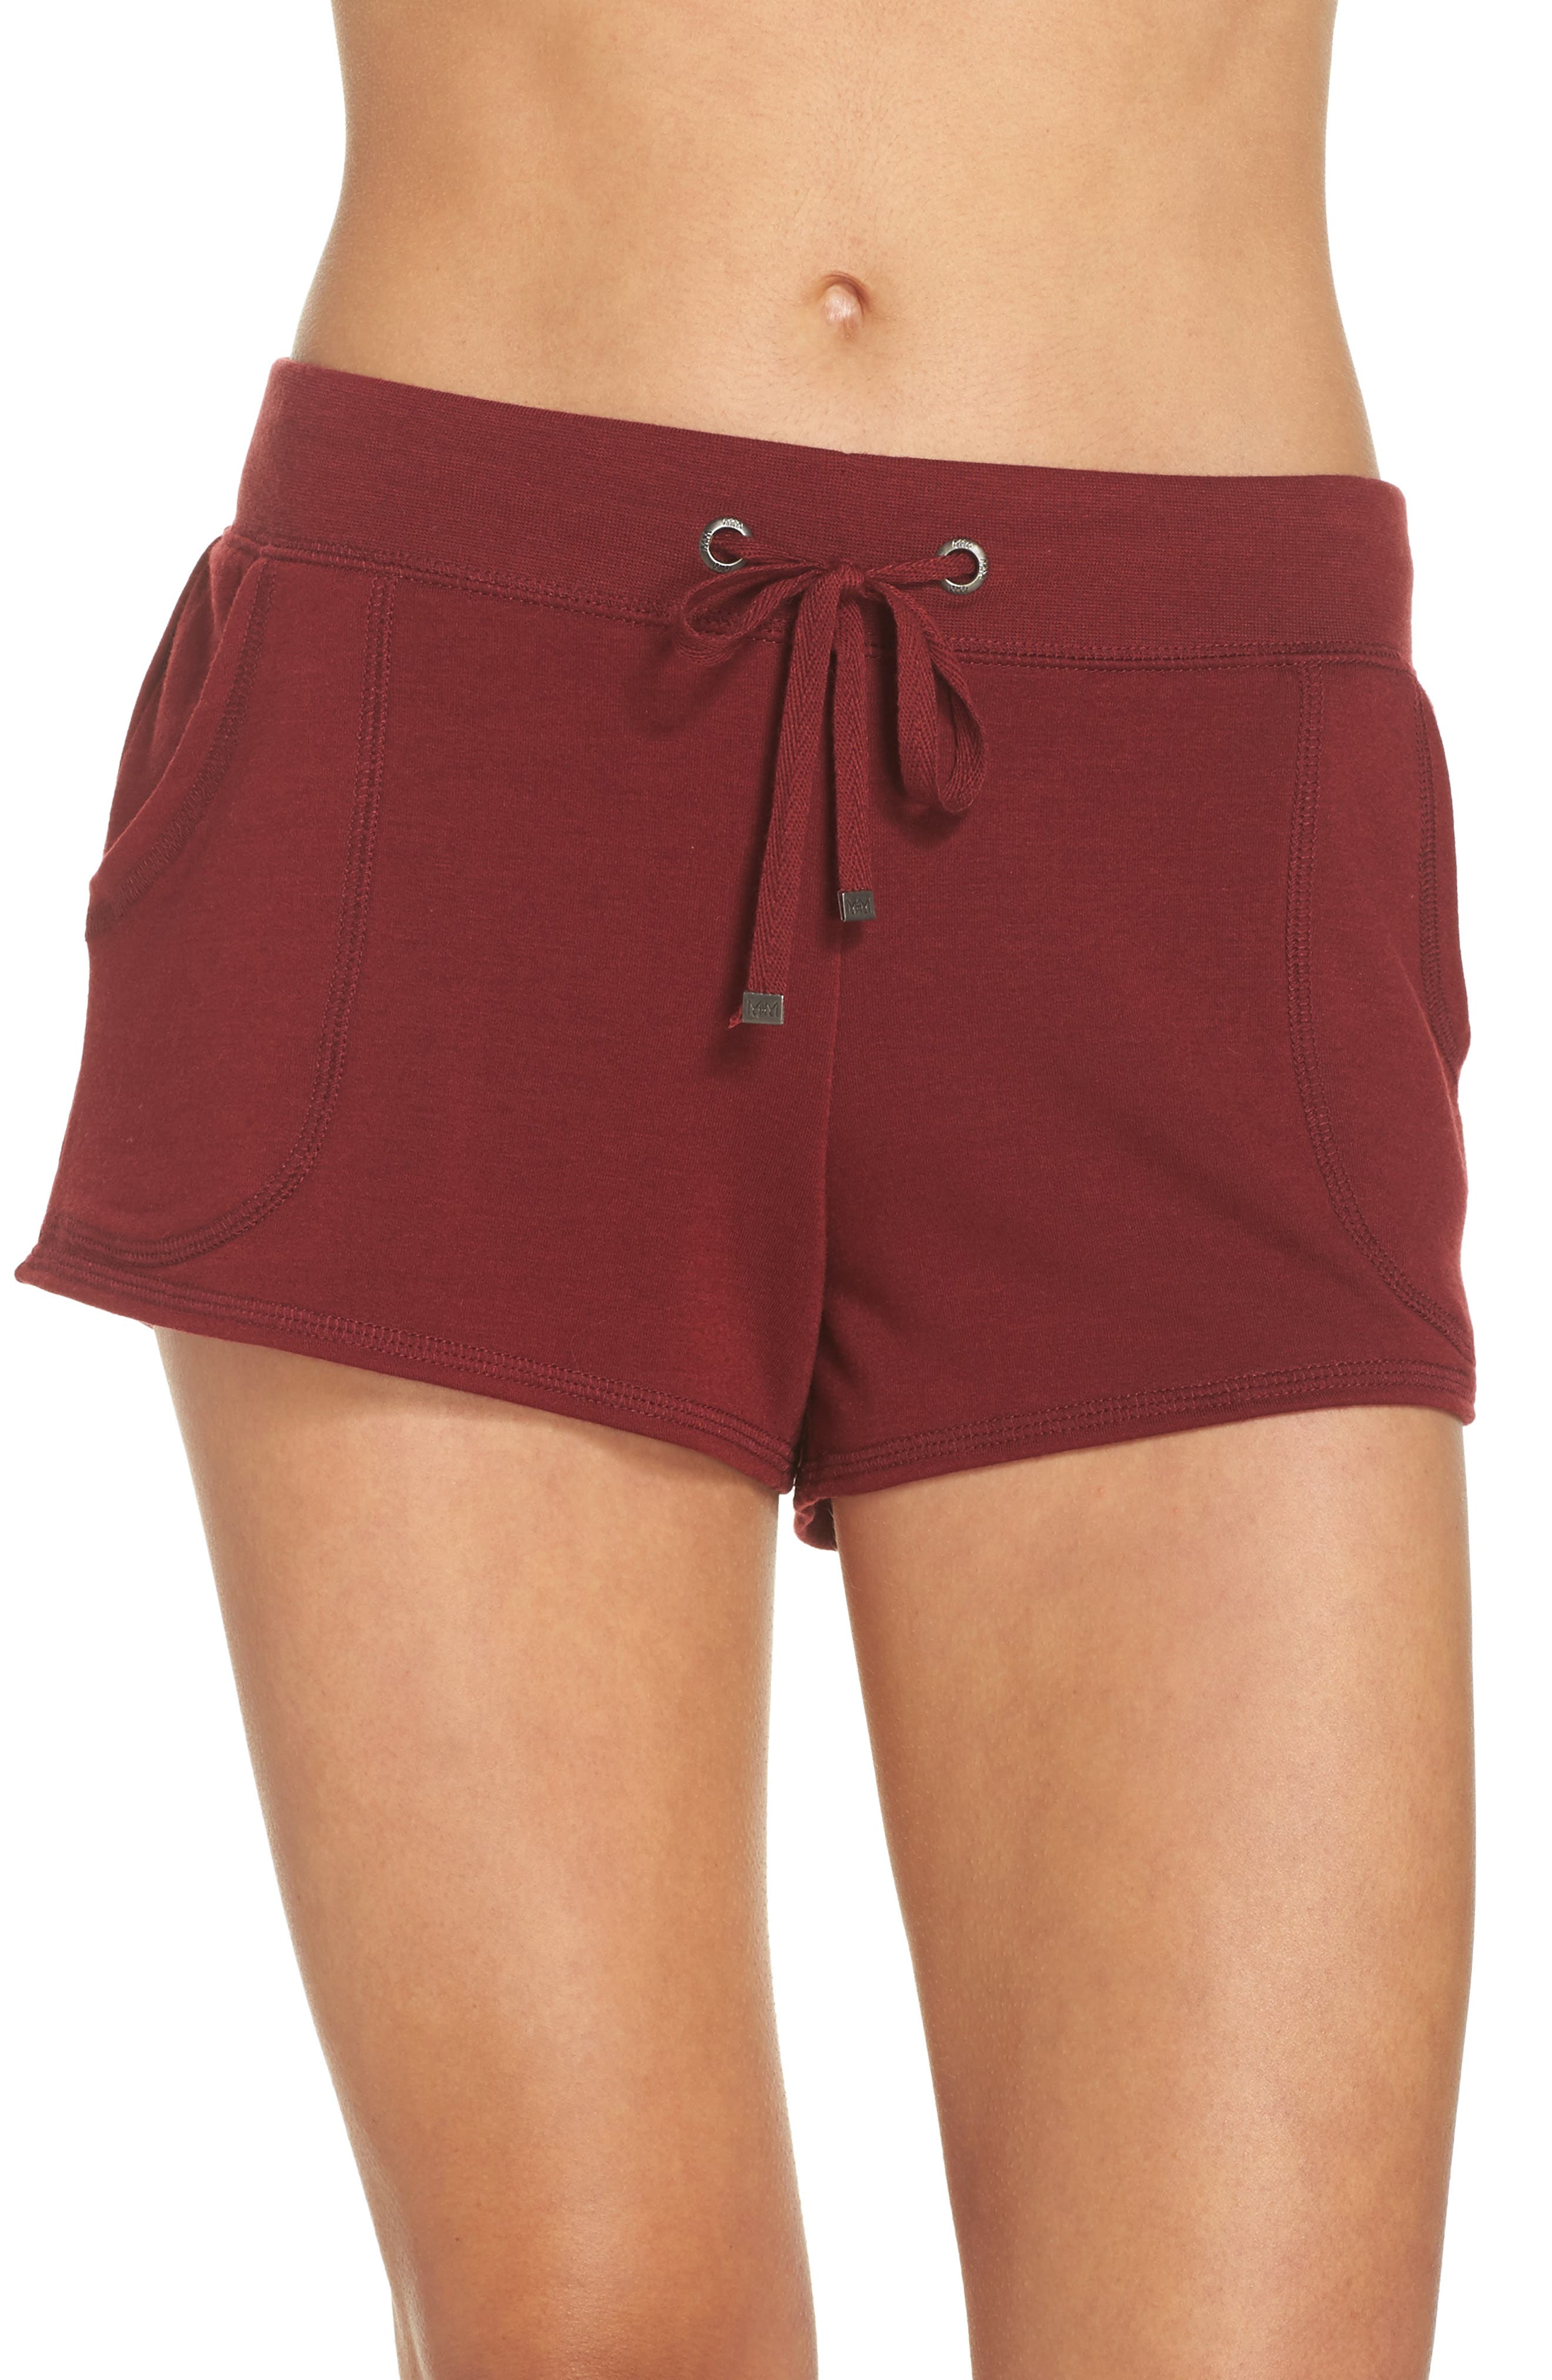 Make + Model Down To The Details Lounge Shorts